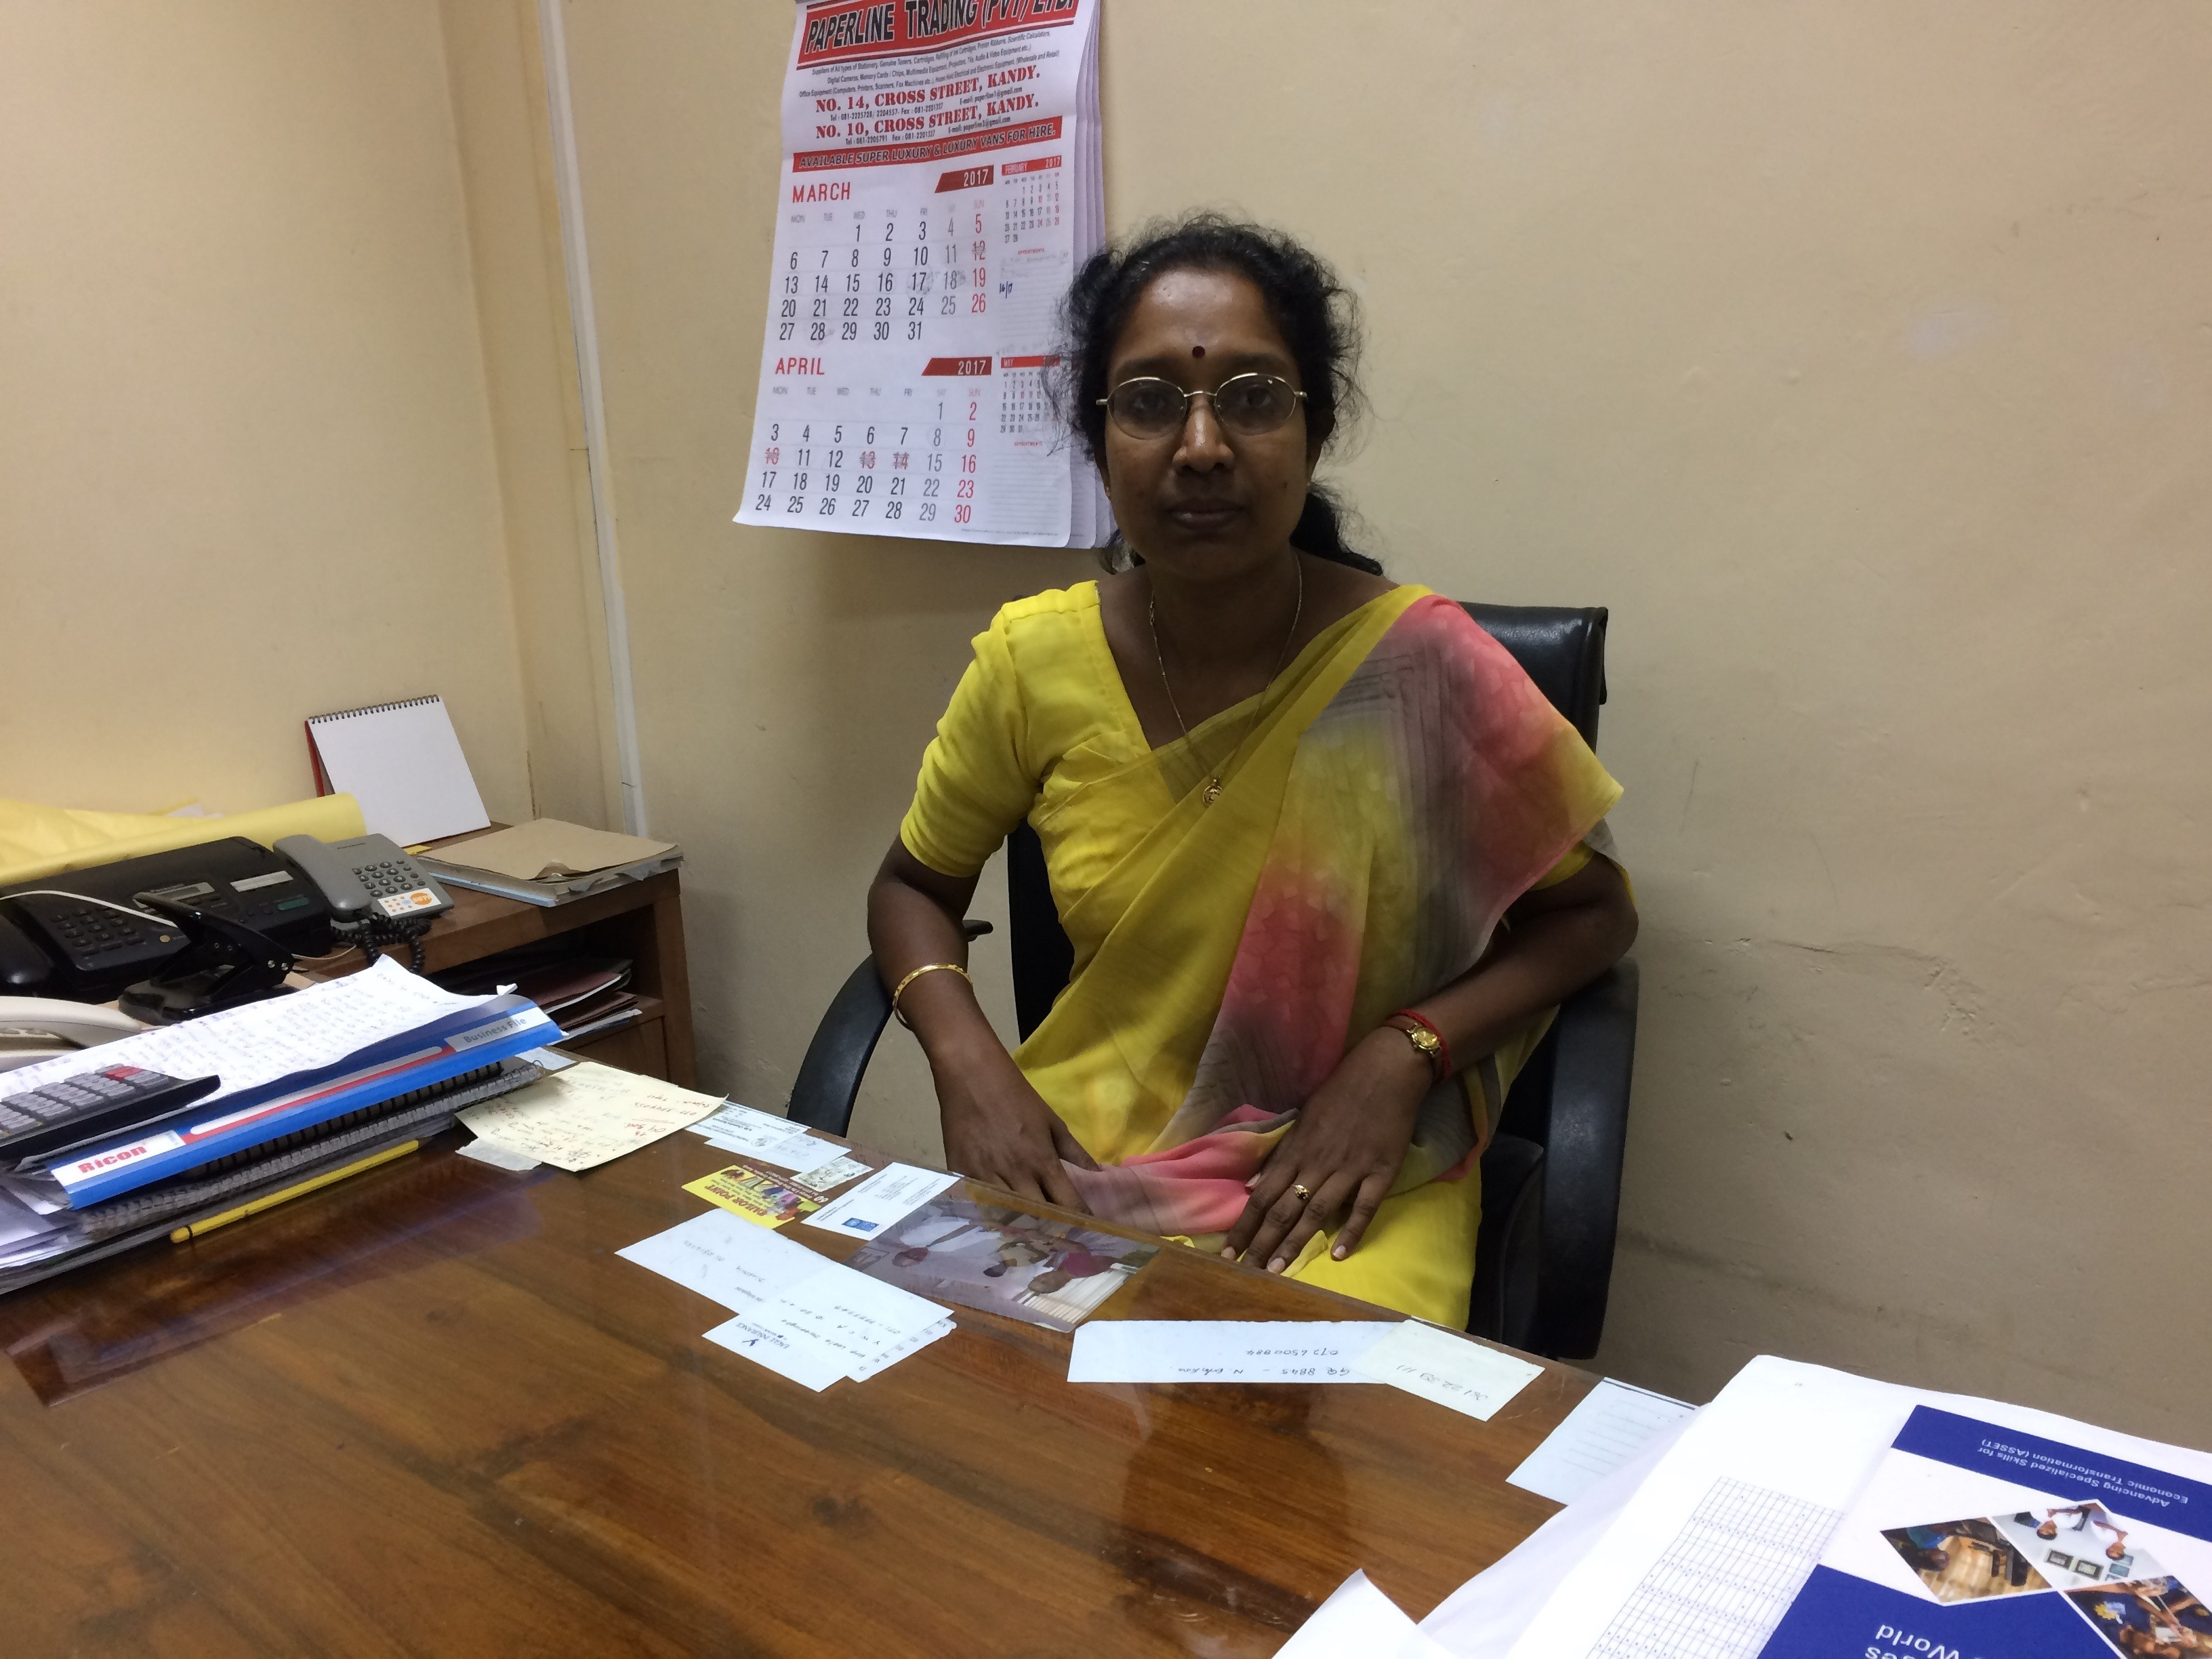 Ms. Shiyamala Velupillai – Community Development and Network Coordinator